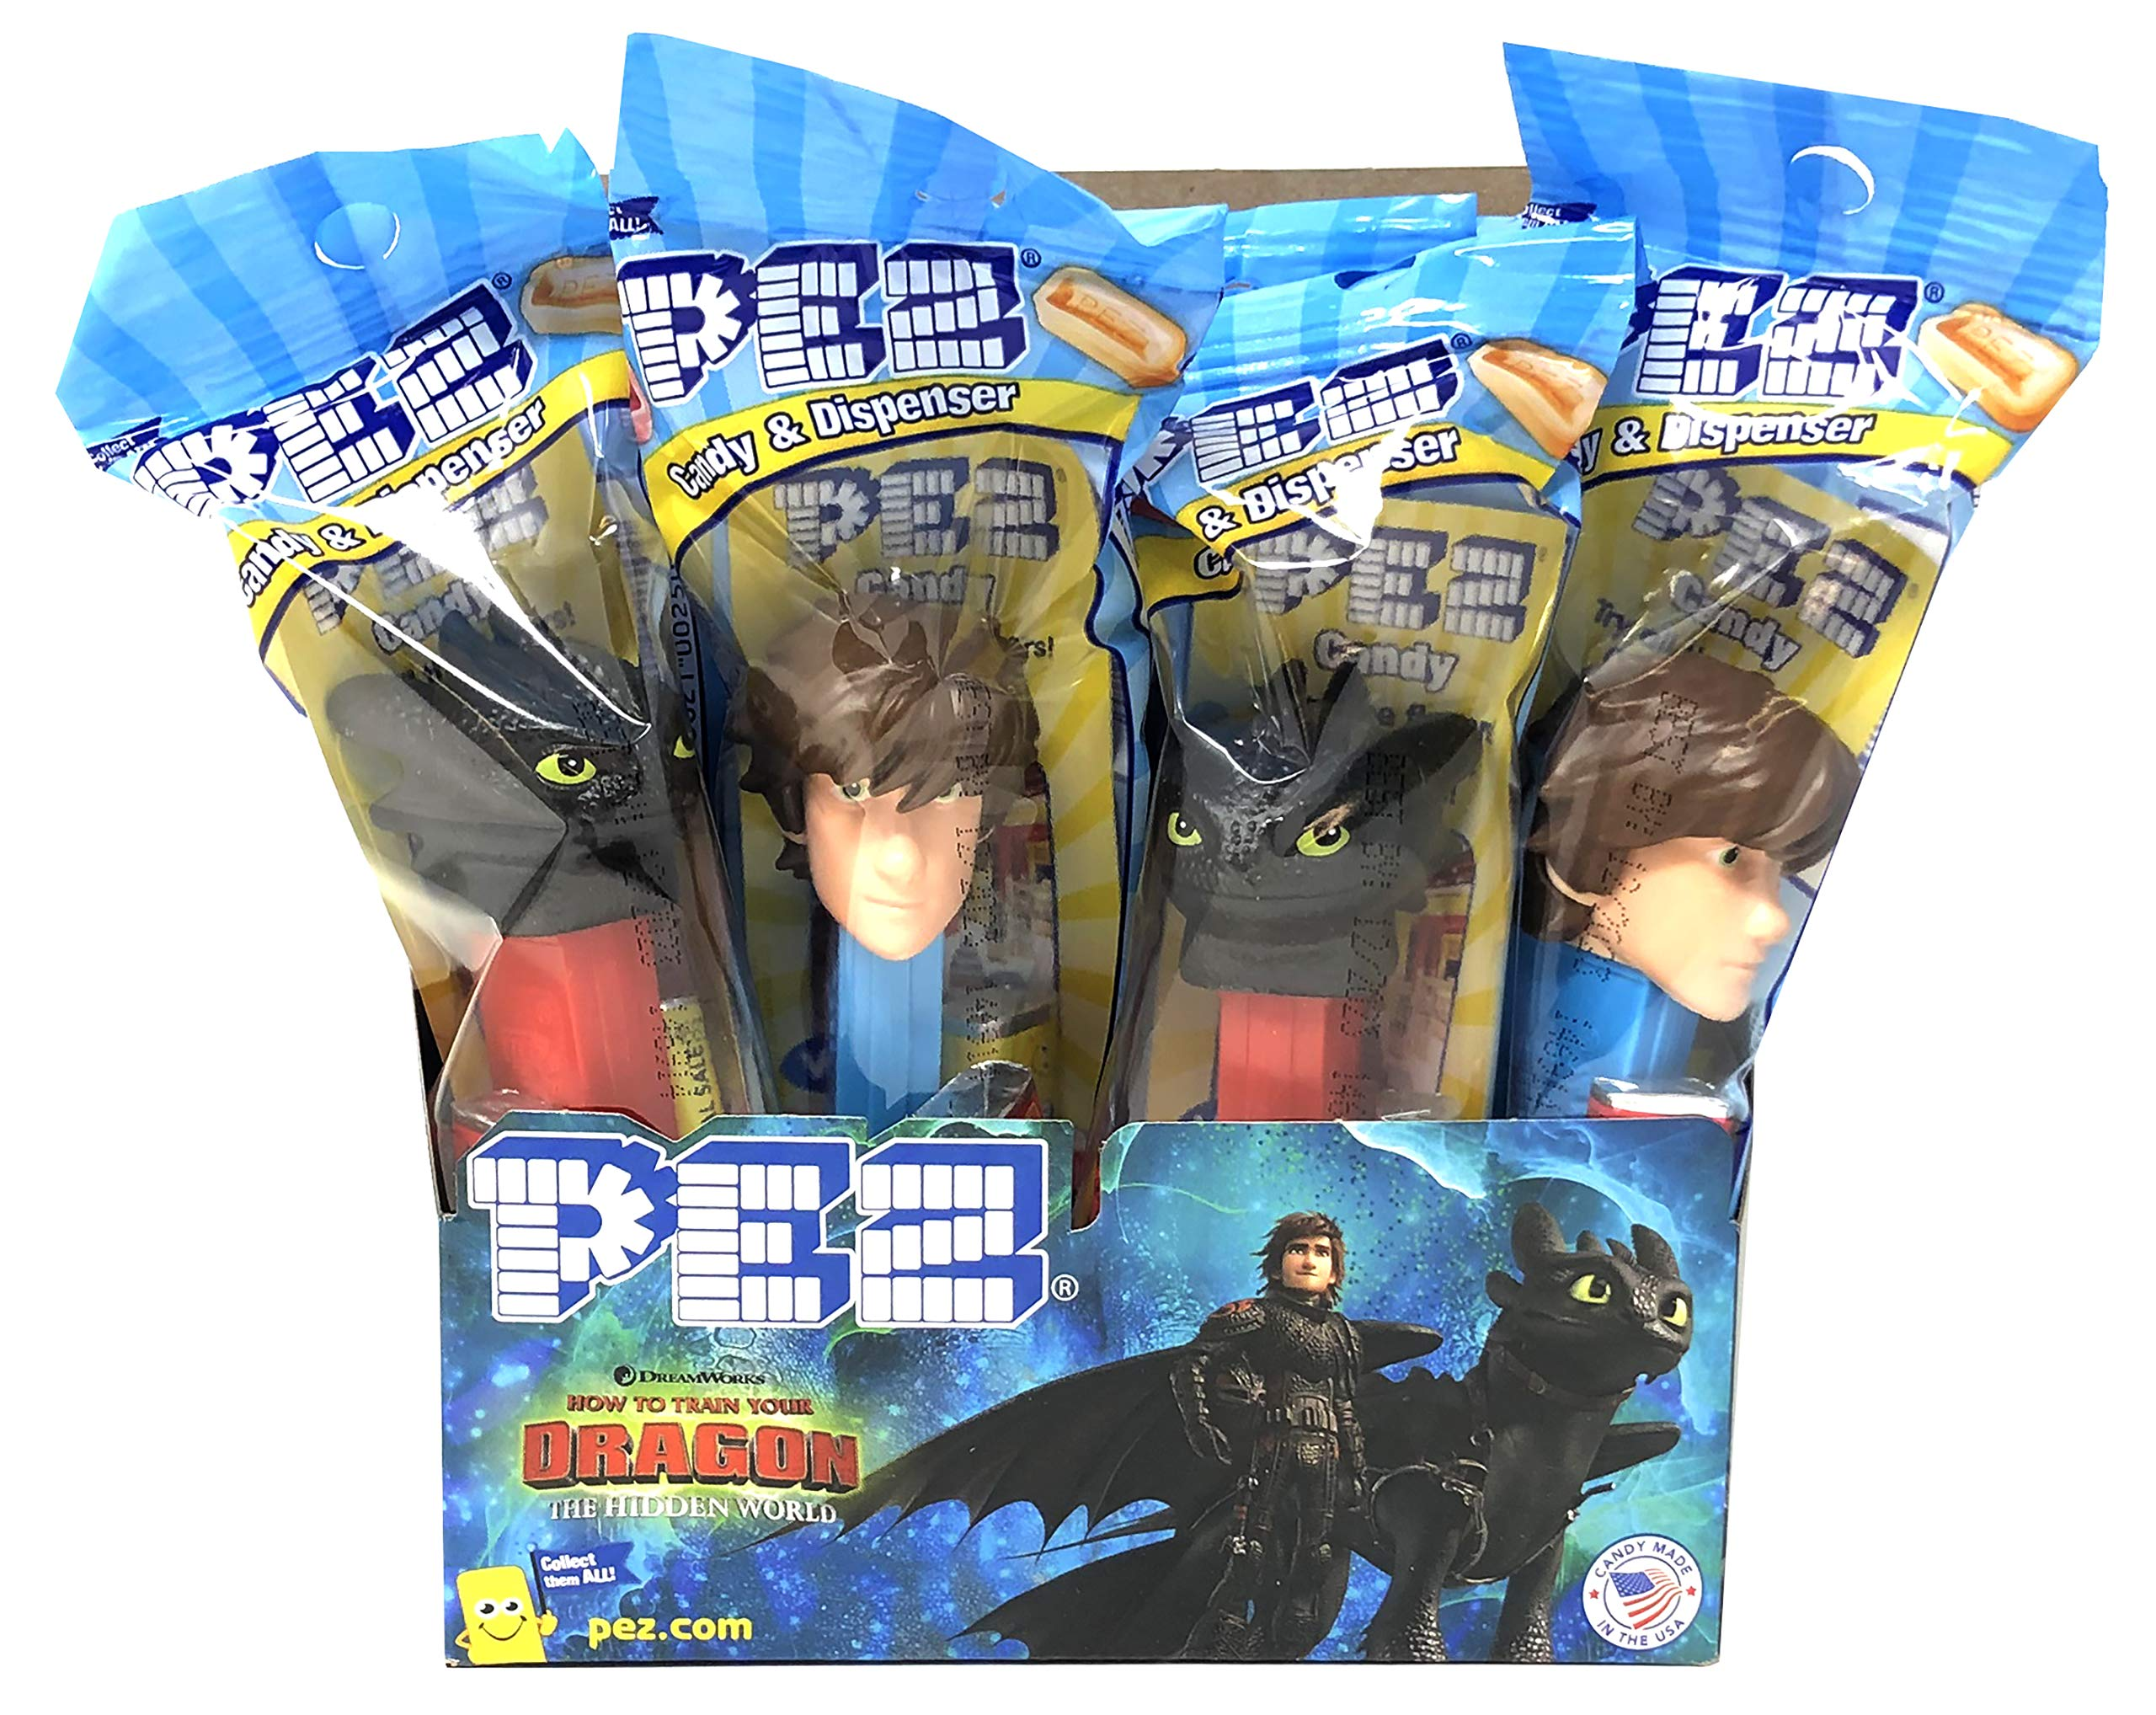 Pez How to Train Your Dragon Candy Dispensers Individually Wrapped Candy and Dispensers with Tru Inertia Kazoo (12 Pack)